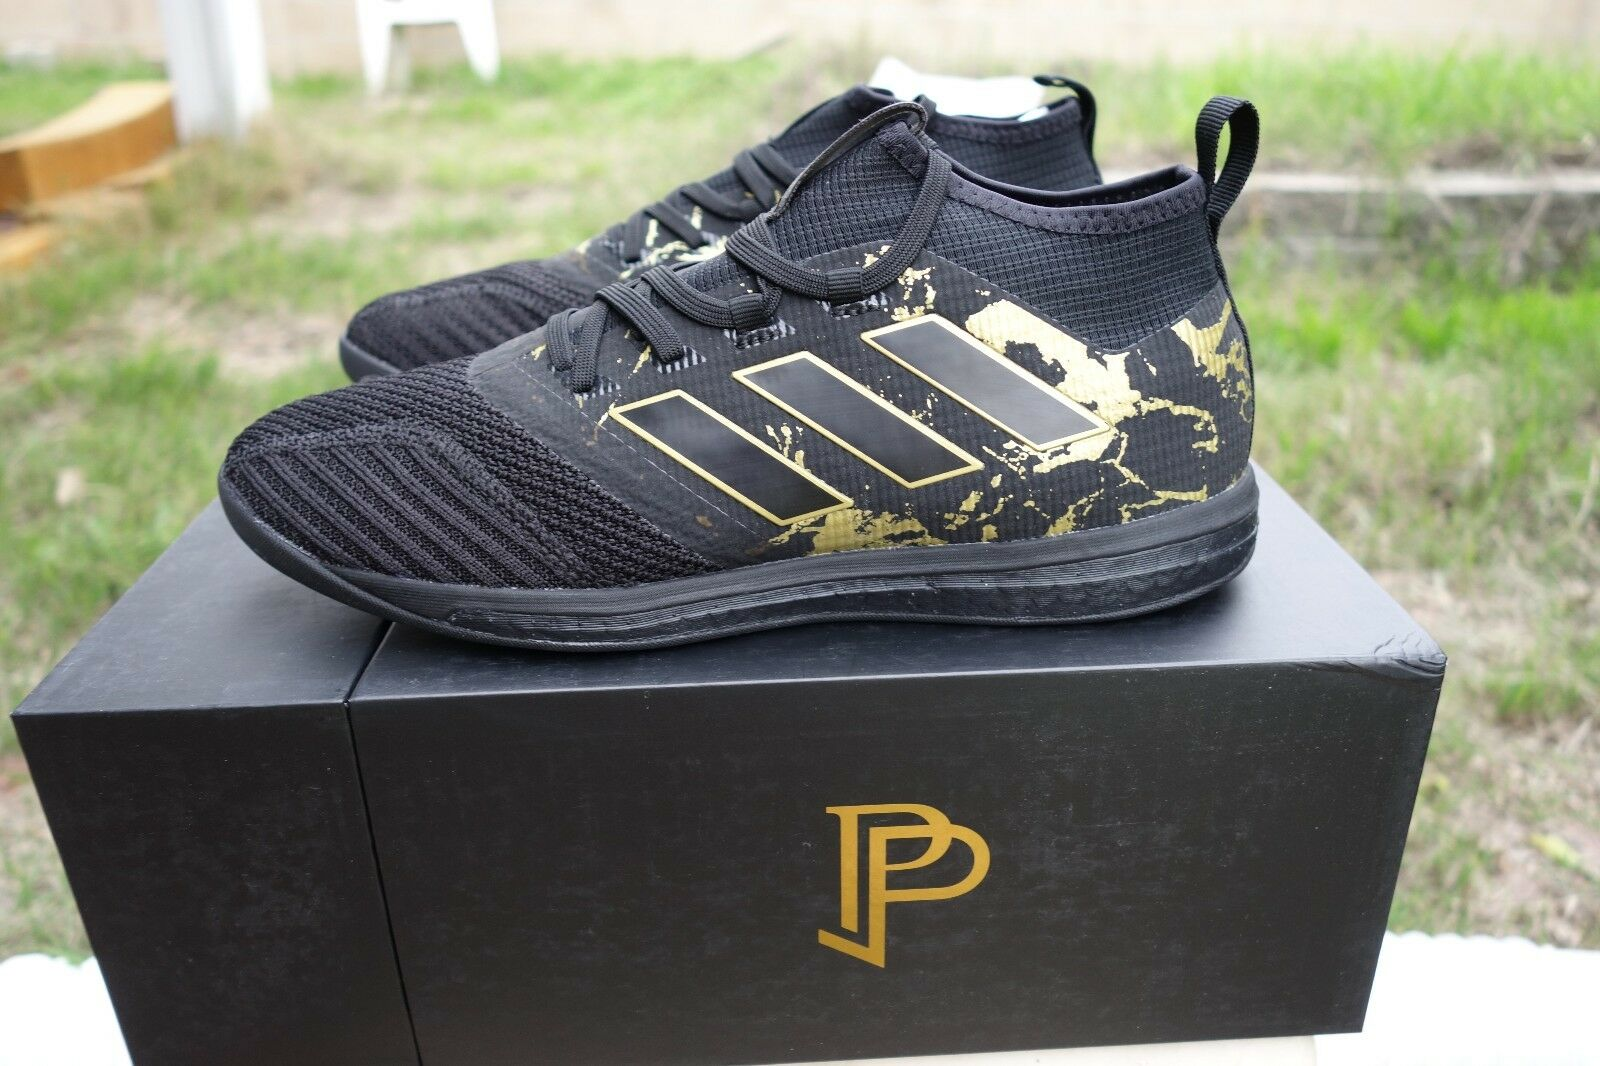 Adidas x Paul Pogba PP Ace Tango 17.1 TR BY9161 size 9.5 1 of 4Only 1  available ... 39087705950f2